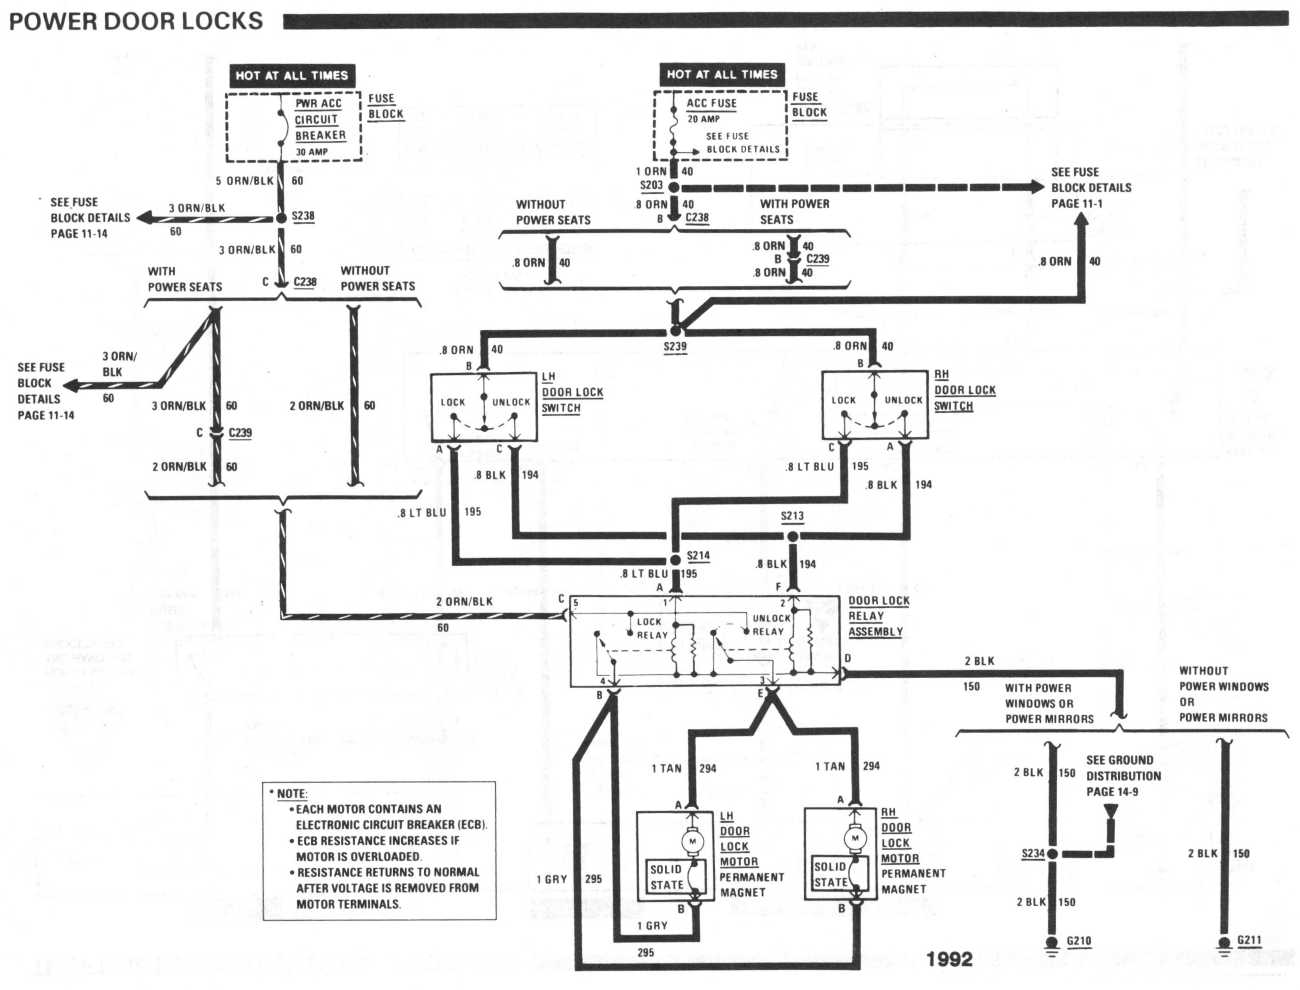 Door Lock Wiring Diagram Mah 4000 Aww